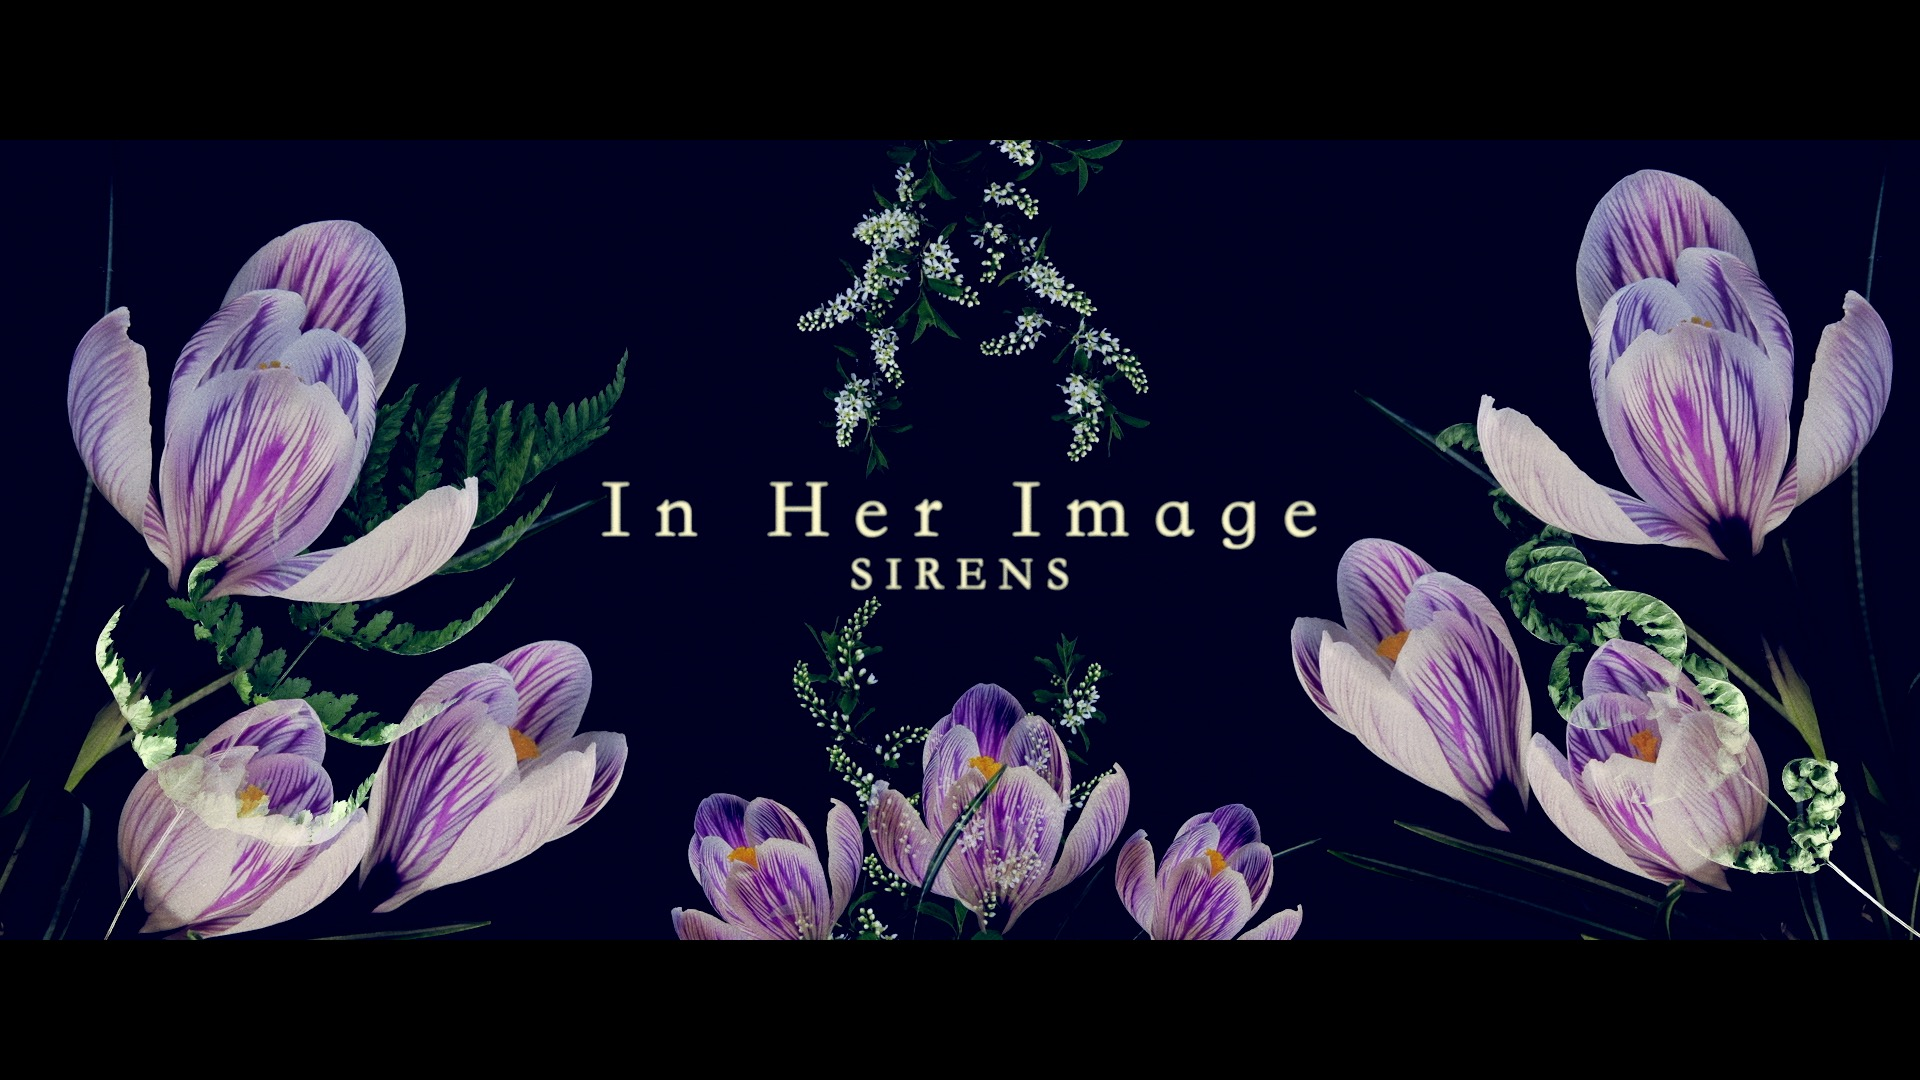 In Her Image - Sirens